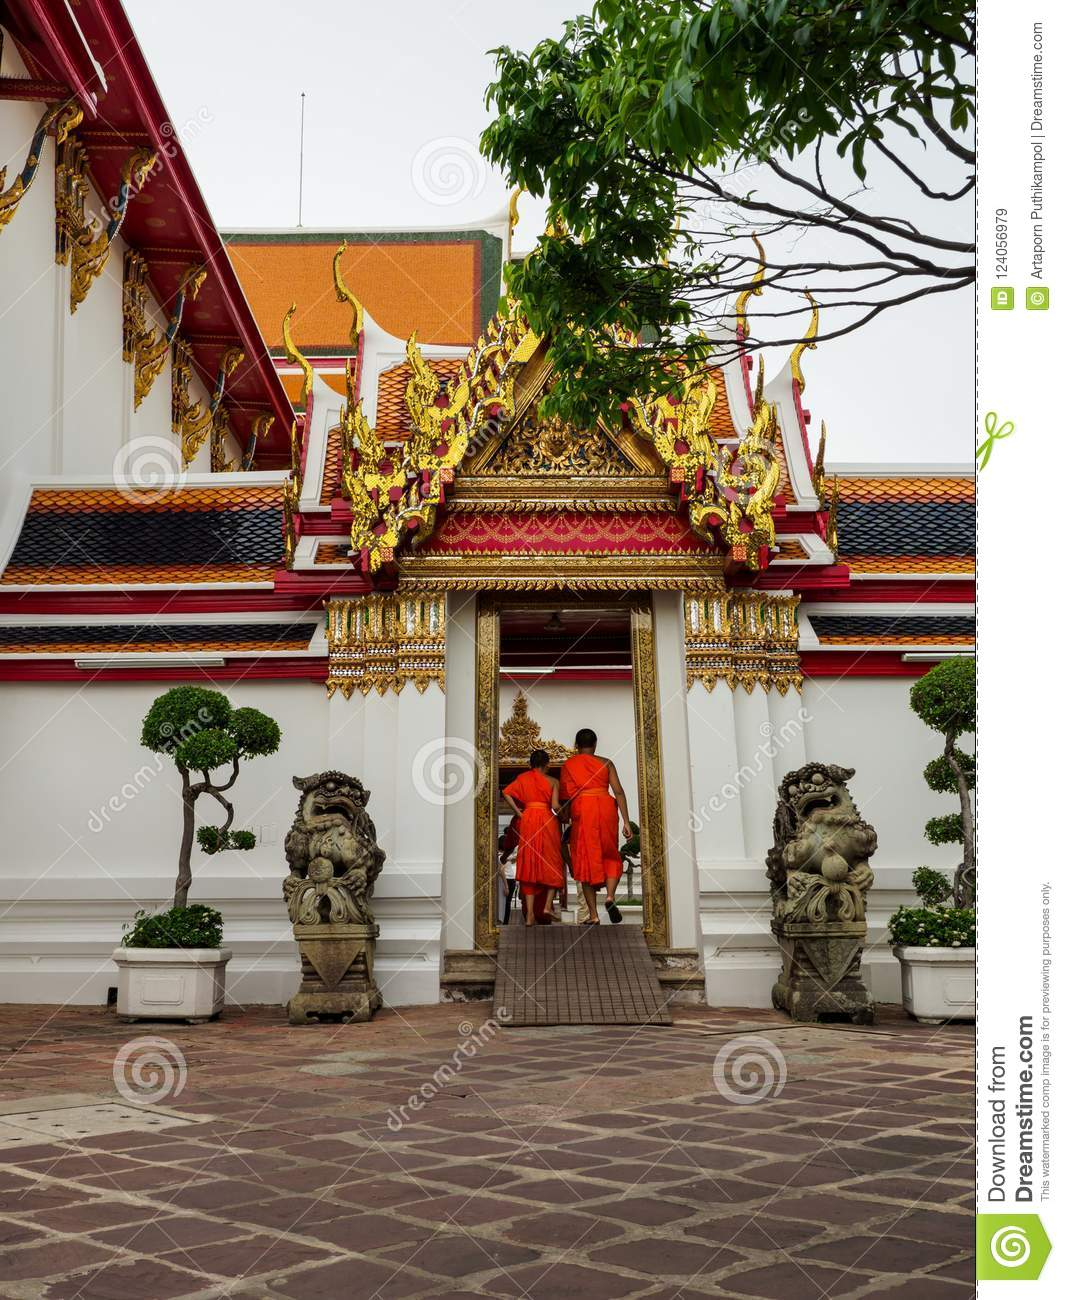 The Novice Monks Entering The Side Entrance Of Wat Pho Temple In